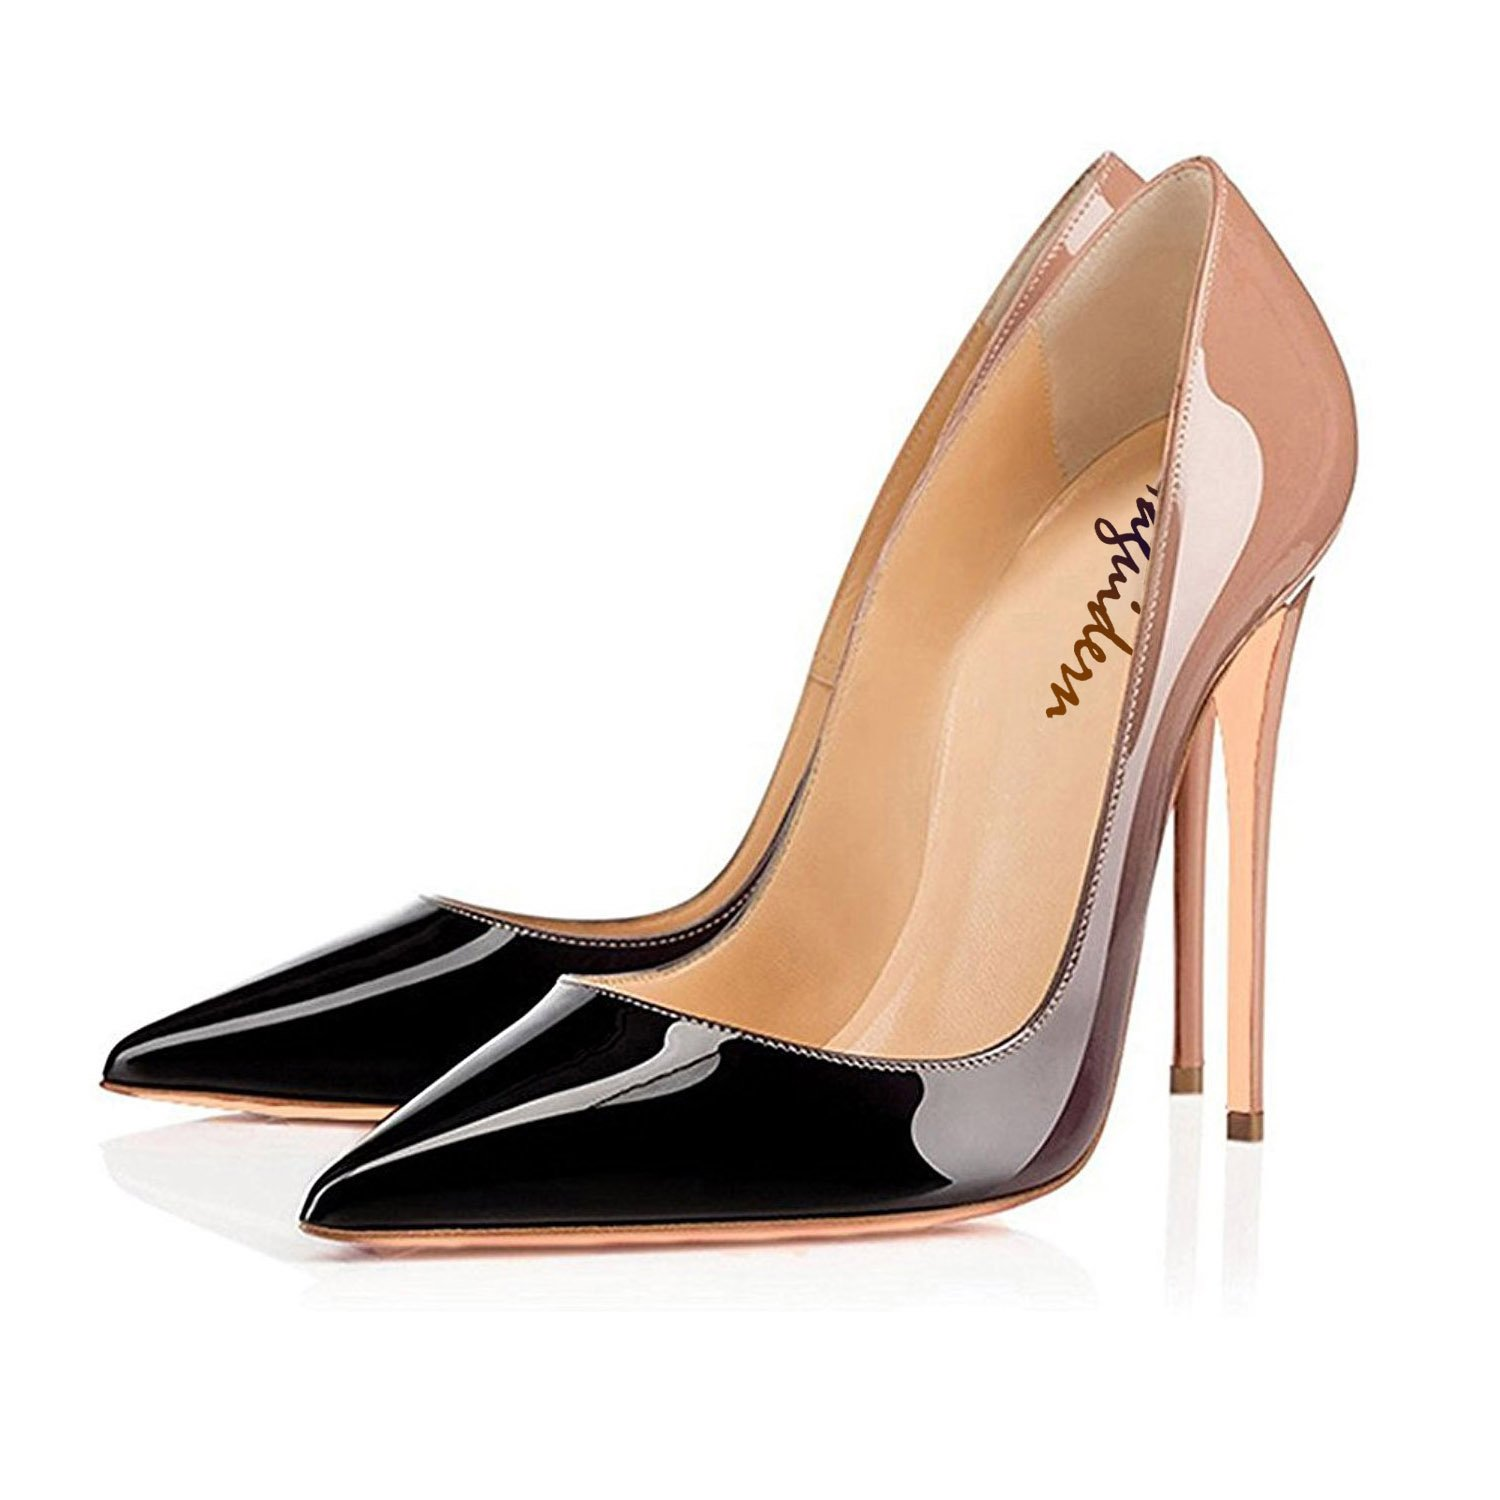 Maguidern Patent Leather Pumps Shoes Shoes Shoes Women's 5 inches Sexy High Heel Shoes Pointed Toe Party Dress Pumps B07C7GYYY8 12 B(M) US|Nude-black fe82d0